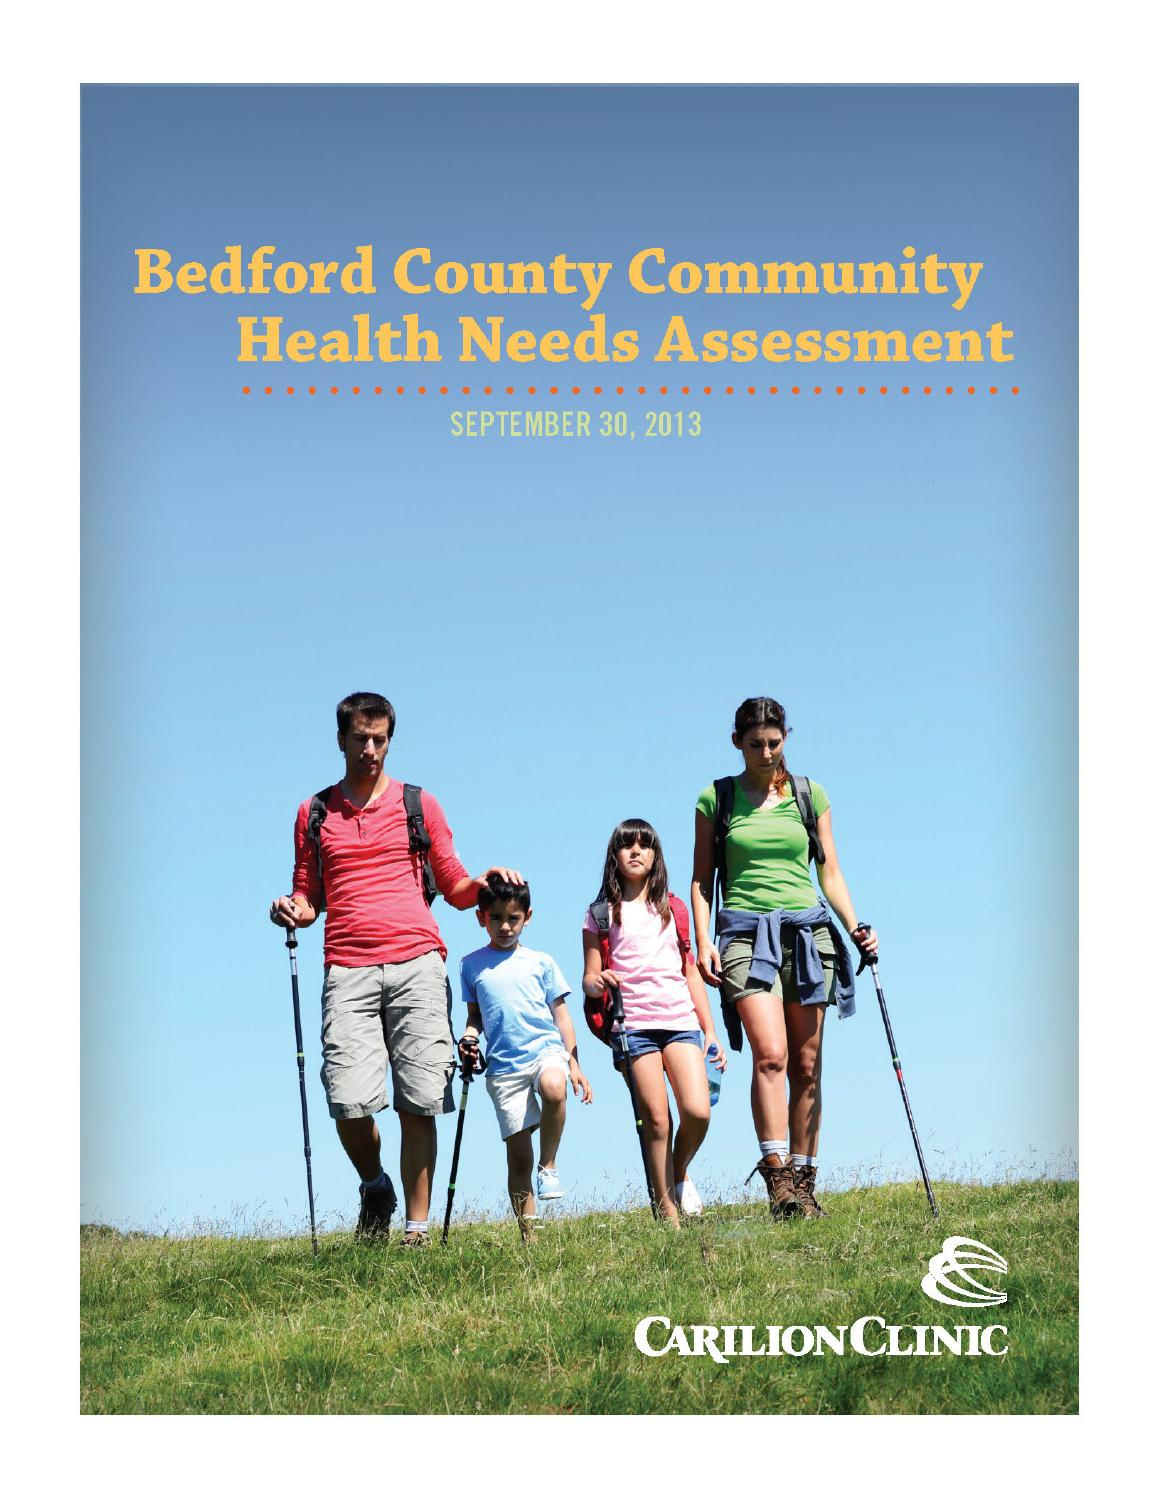 Bedford County Community Health Needs Assessment By Carilion Clinic  Bedford County Community Health Needs Assessment By Carilion Clinic  Issuu